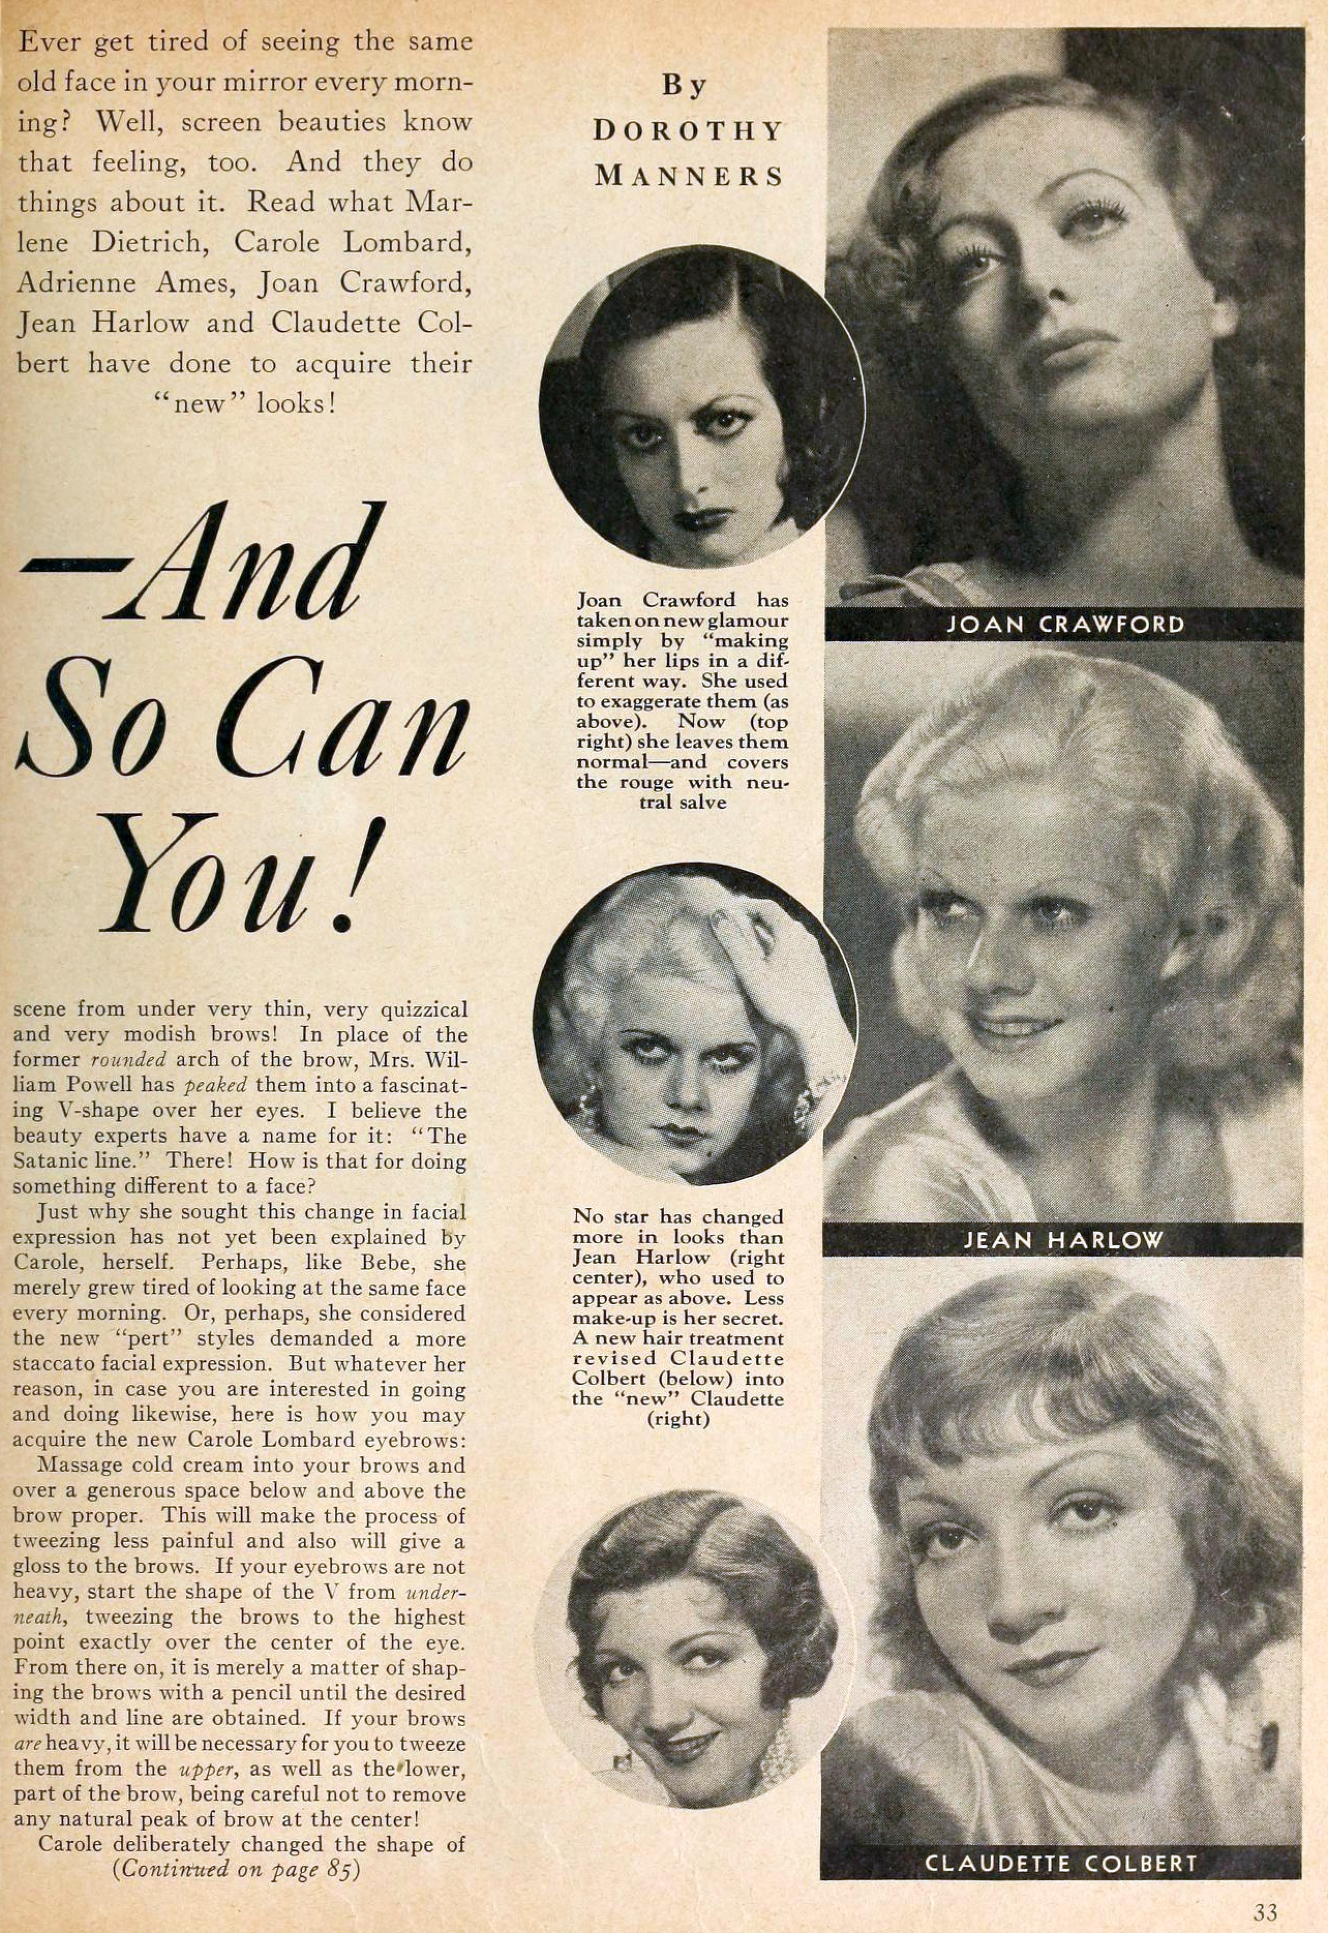 carole lombard motion picture june 1933 changed looks 01a